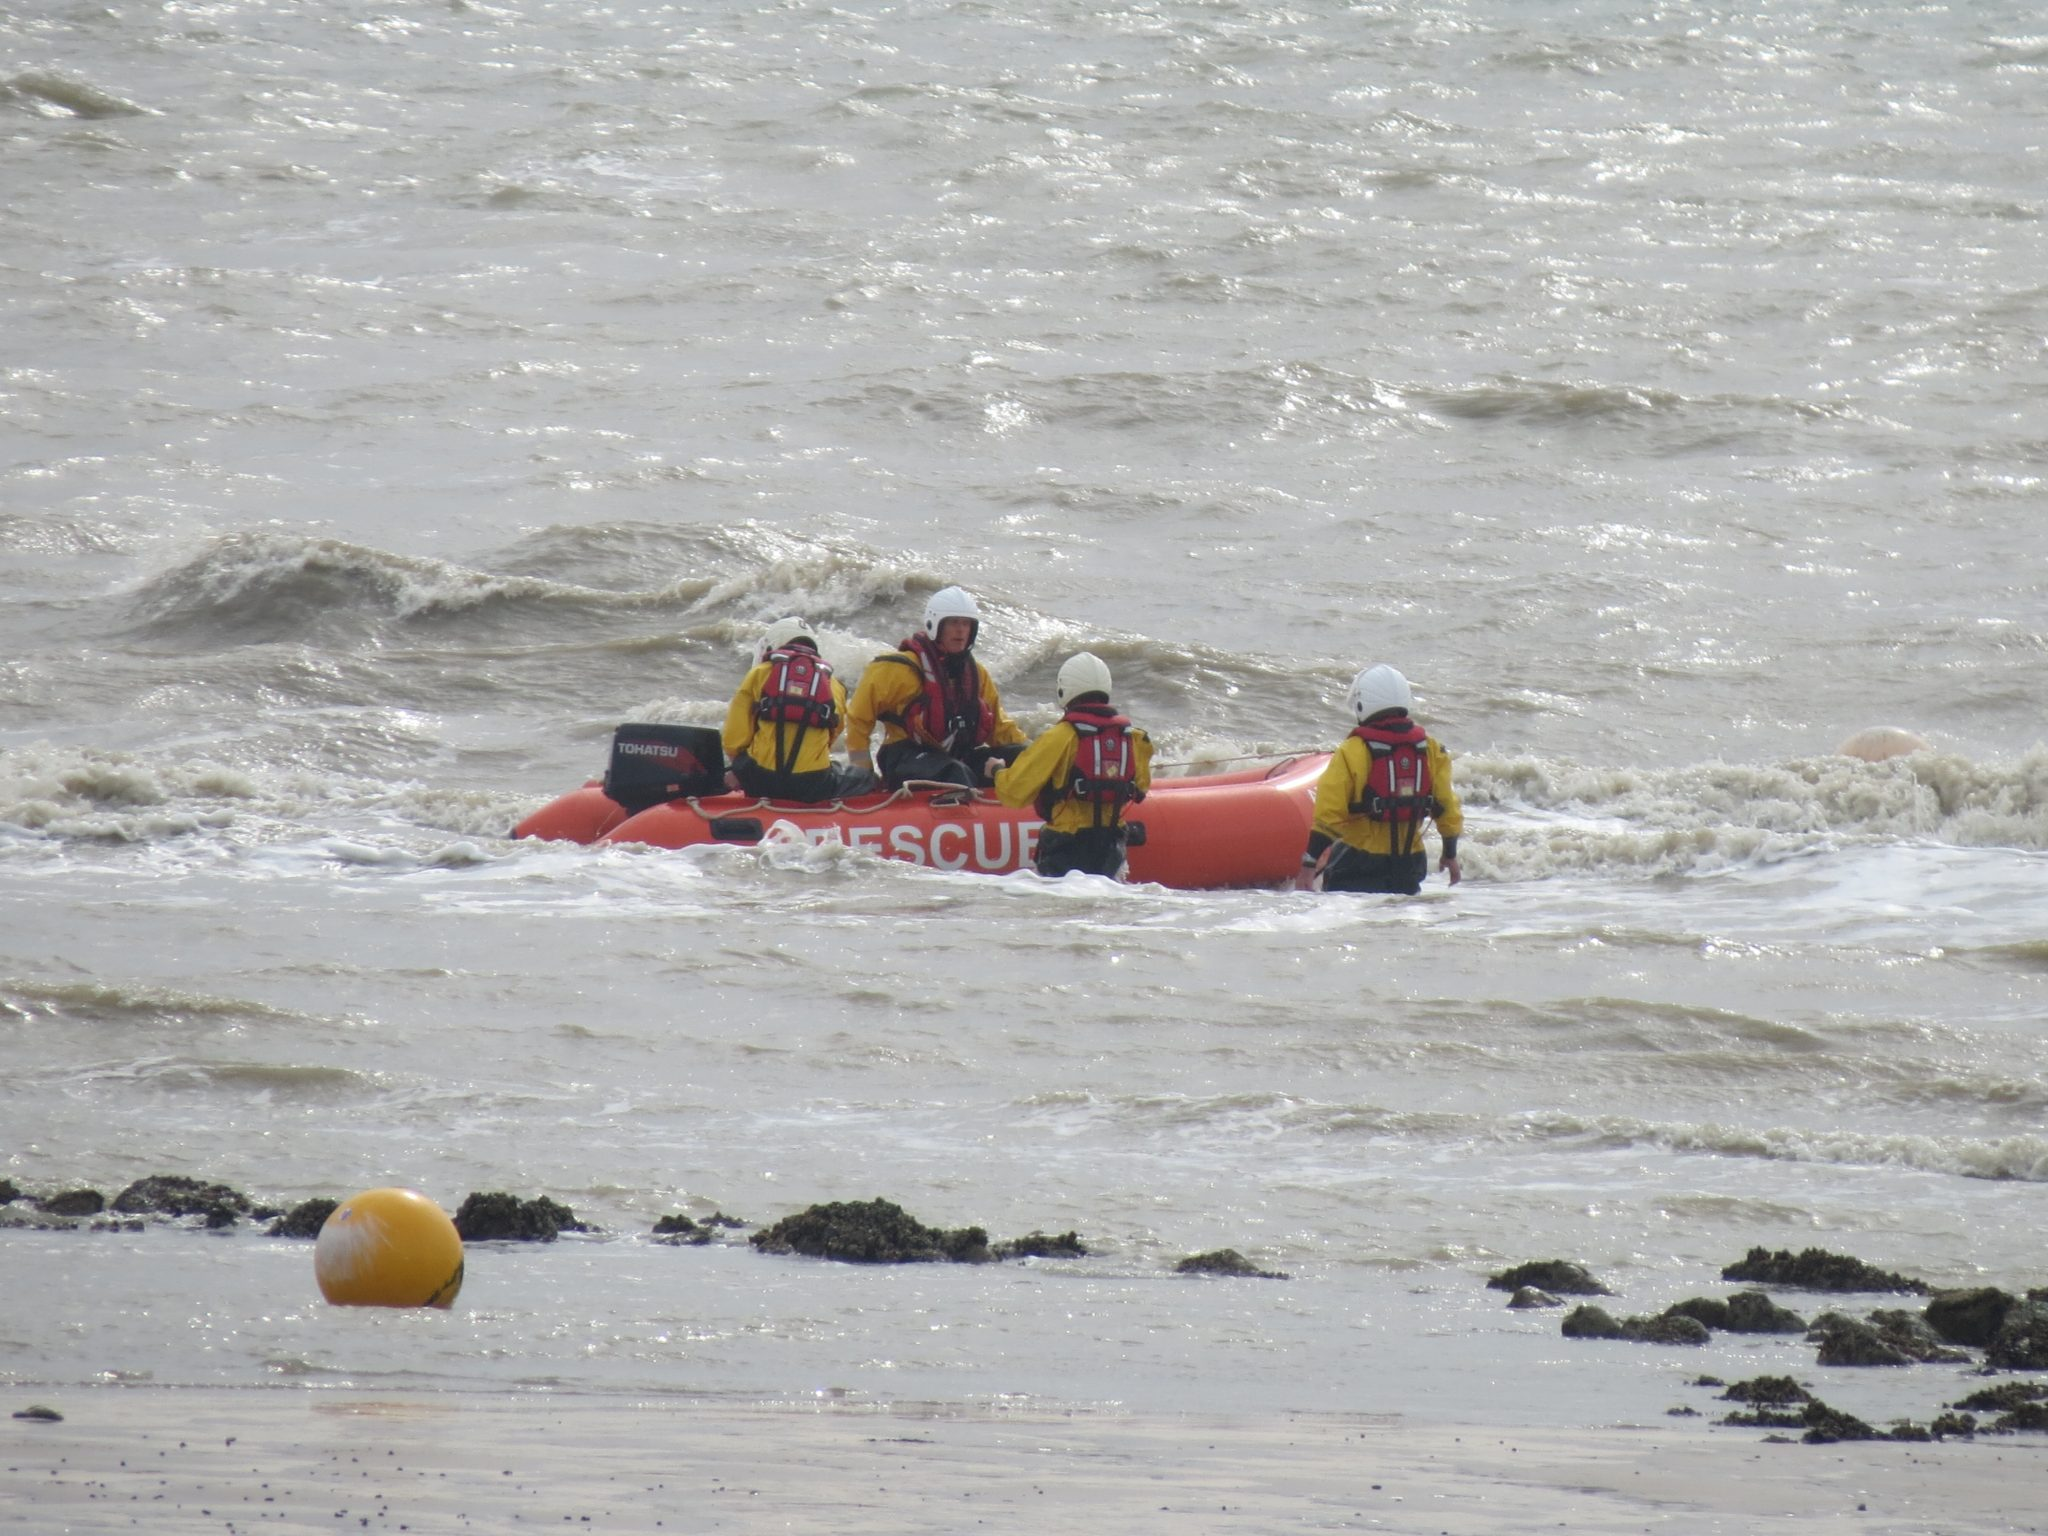 Today's training … low tide, high risk manoeuvres!